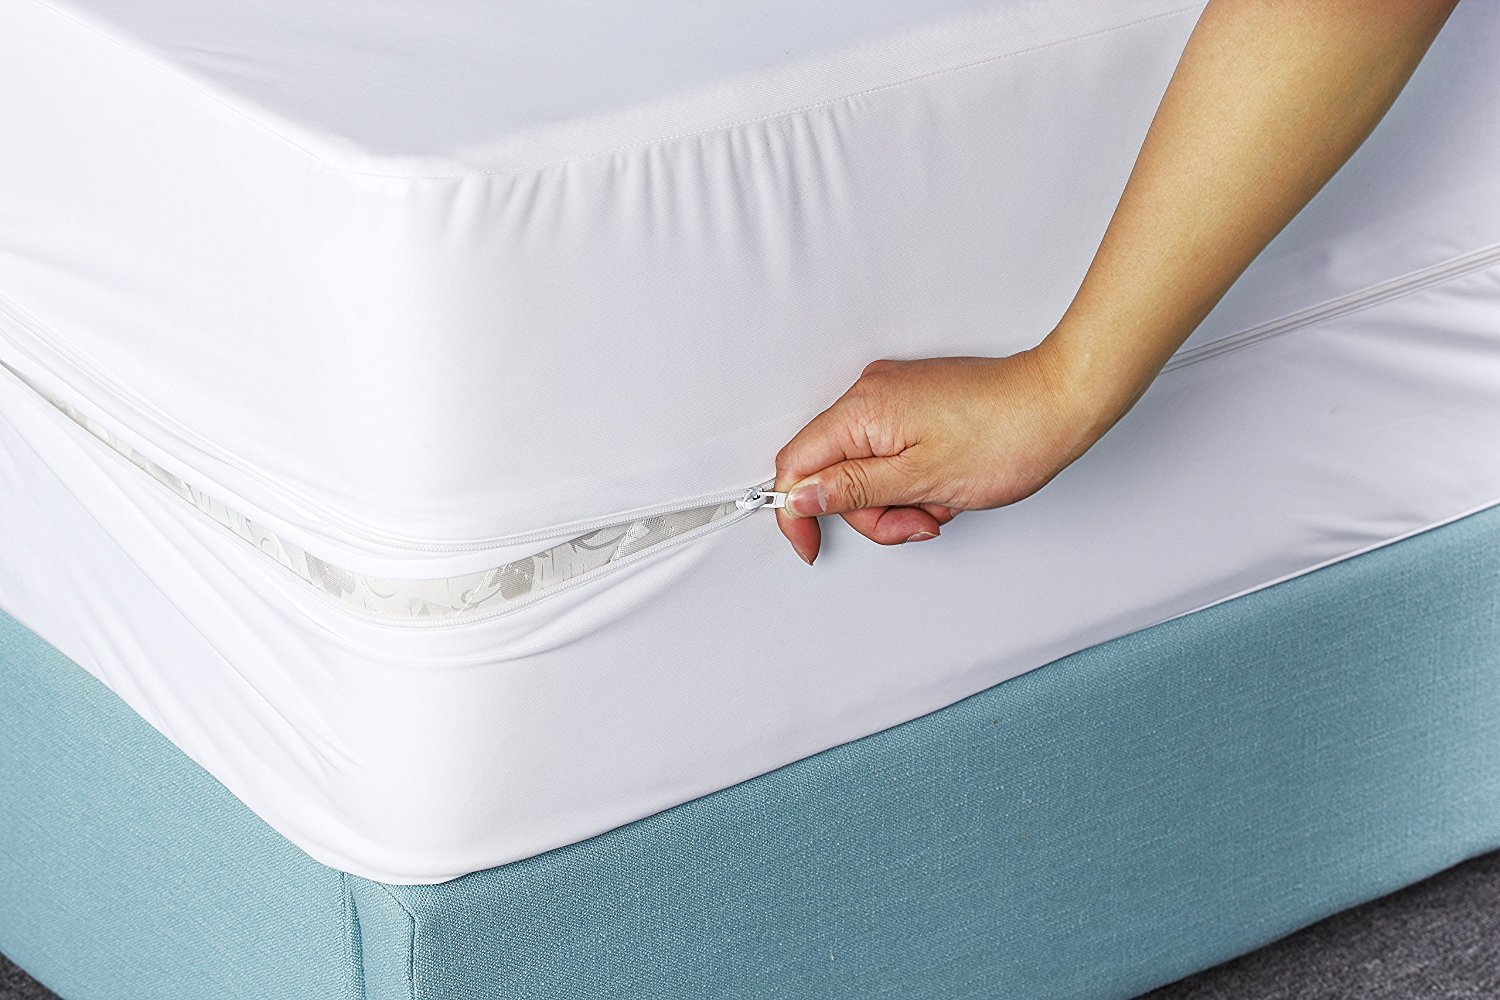 Amazon.com: Utopia Bedding Waterproof Zippered Mattress Encasement Cover - Bed  Bug Proof, Vinyl Safe and Hypoallergenic Protection (Twin): Home & Kitchen